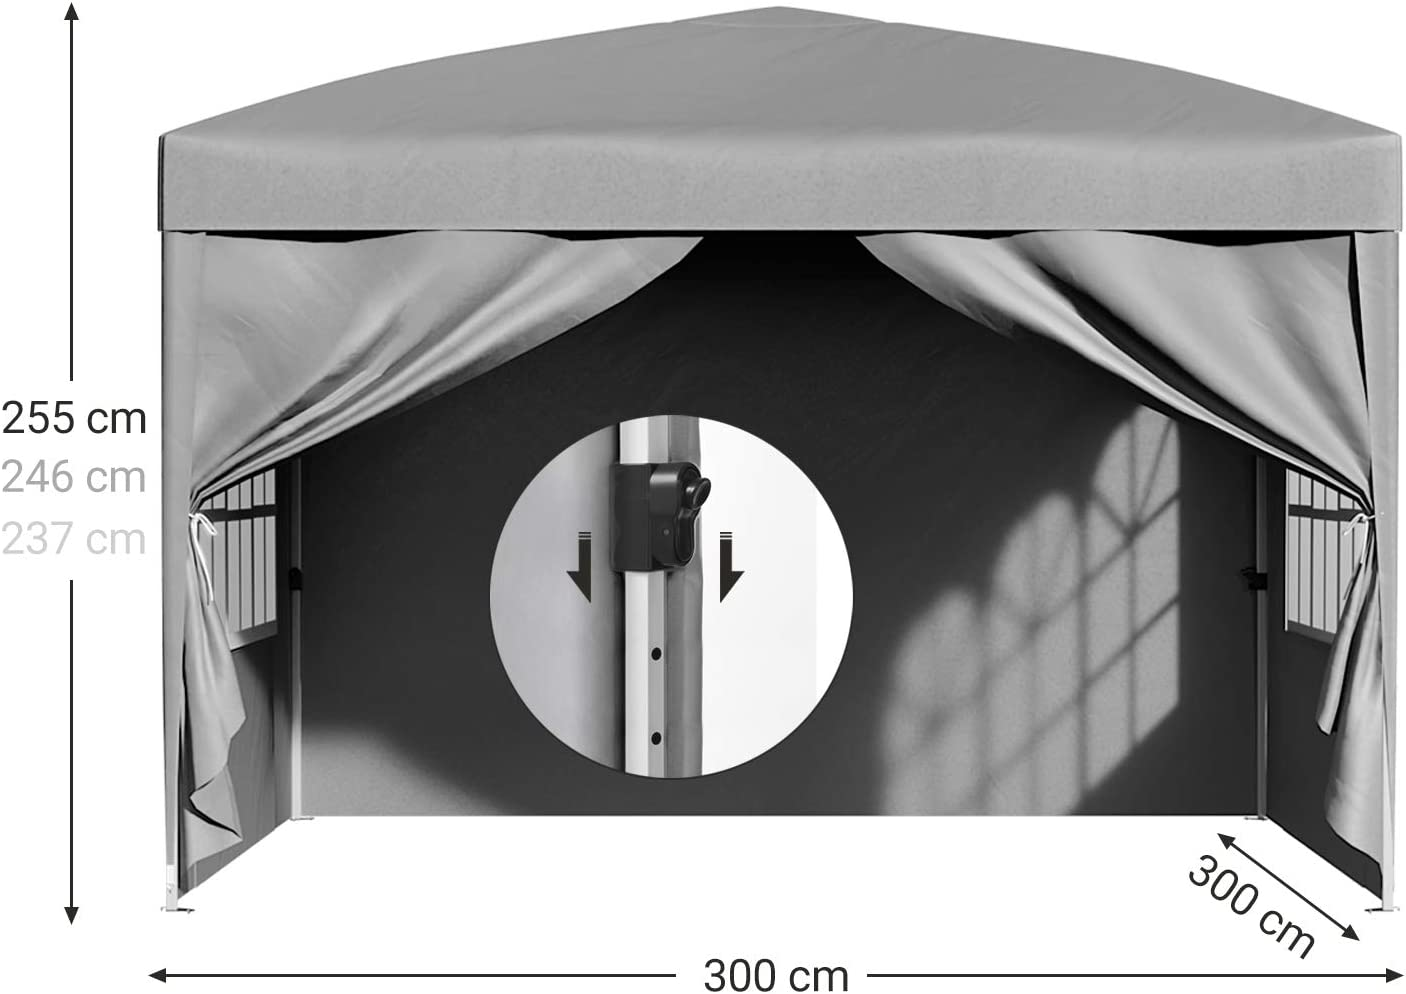 Portable for Outdoor Garden Patio Party Commercial Events Waterproof Pop Up Awning Canopy Tent with Carry Bag 2 Full Sidewalls Grey GCT14GY SONGMICS Gazebo 3 x 3 m Marquee Tent Anti-UV